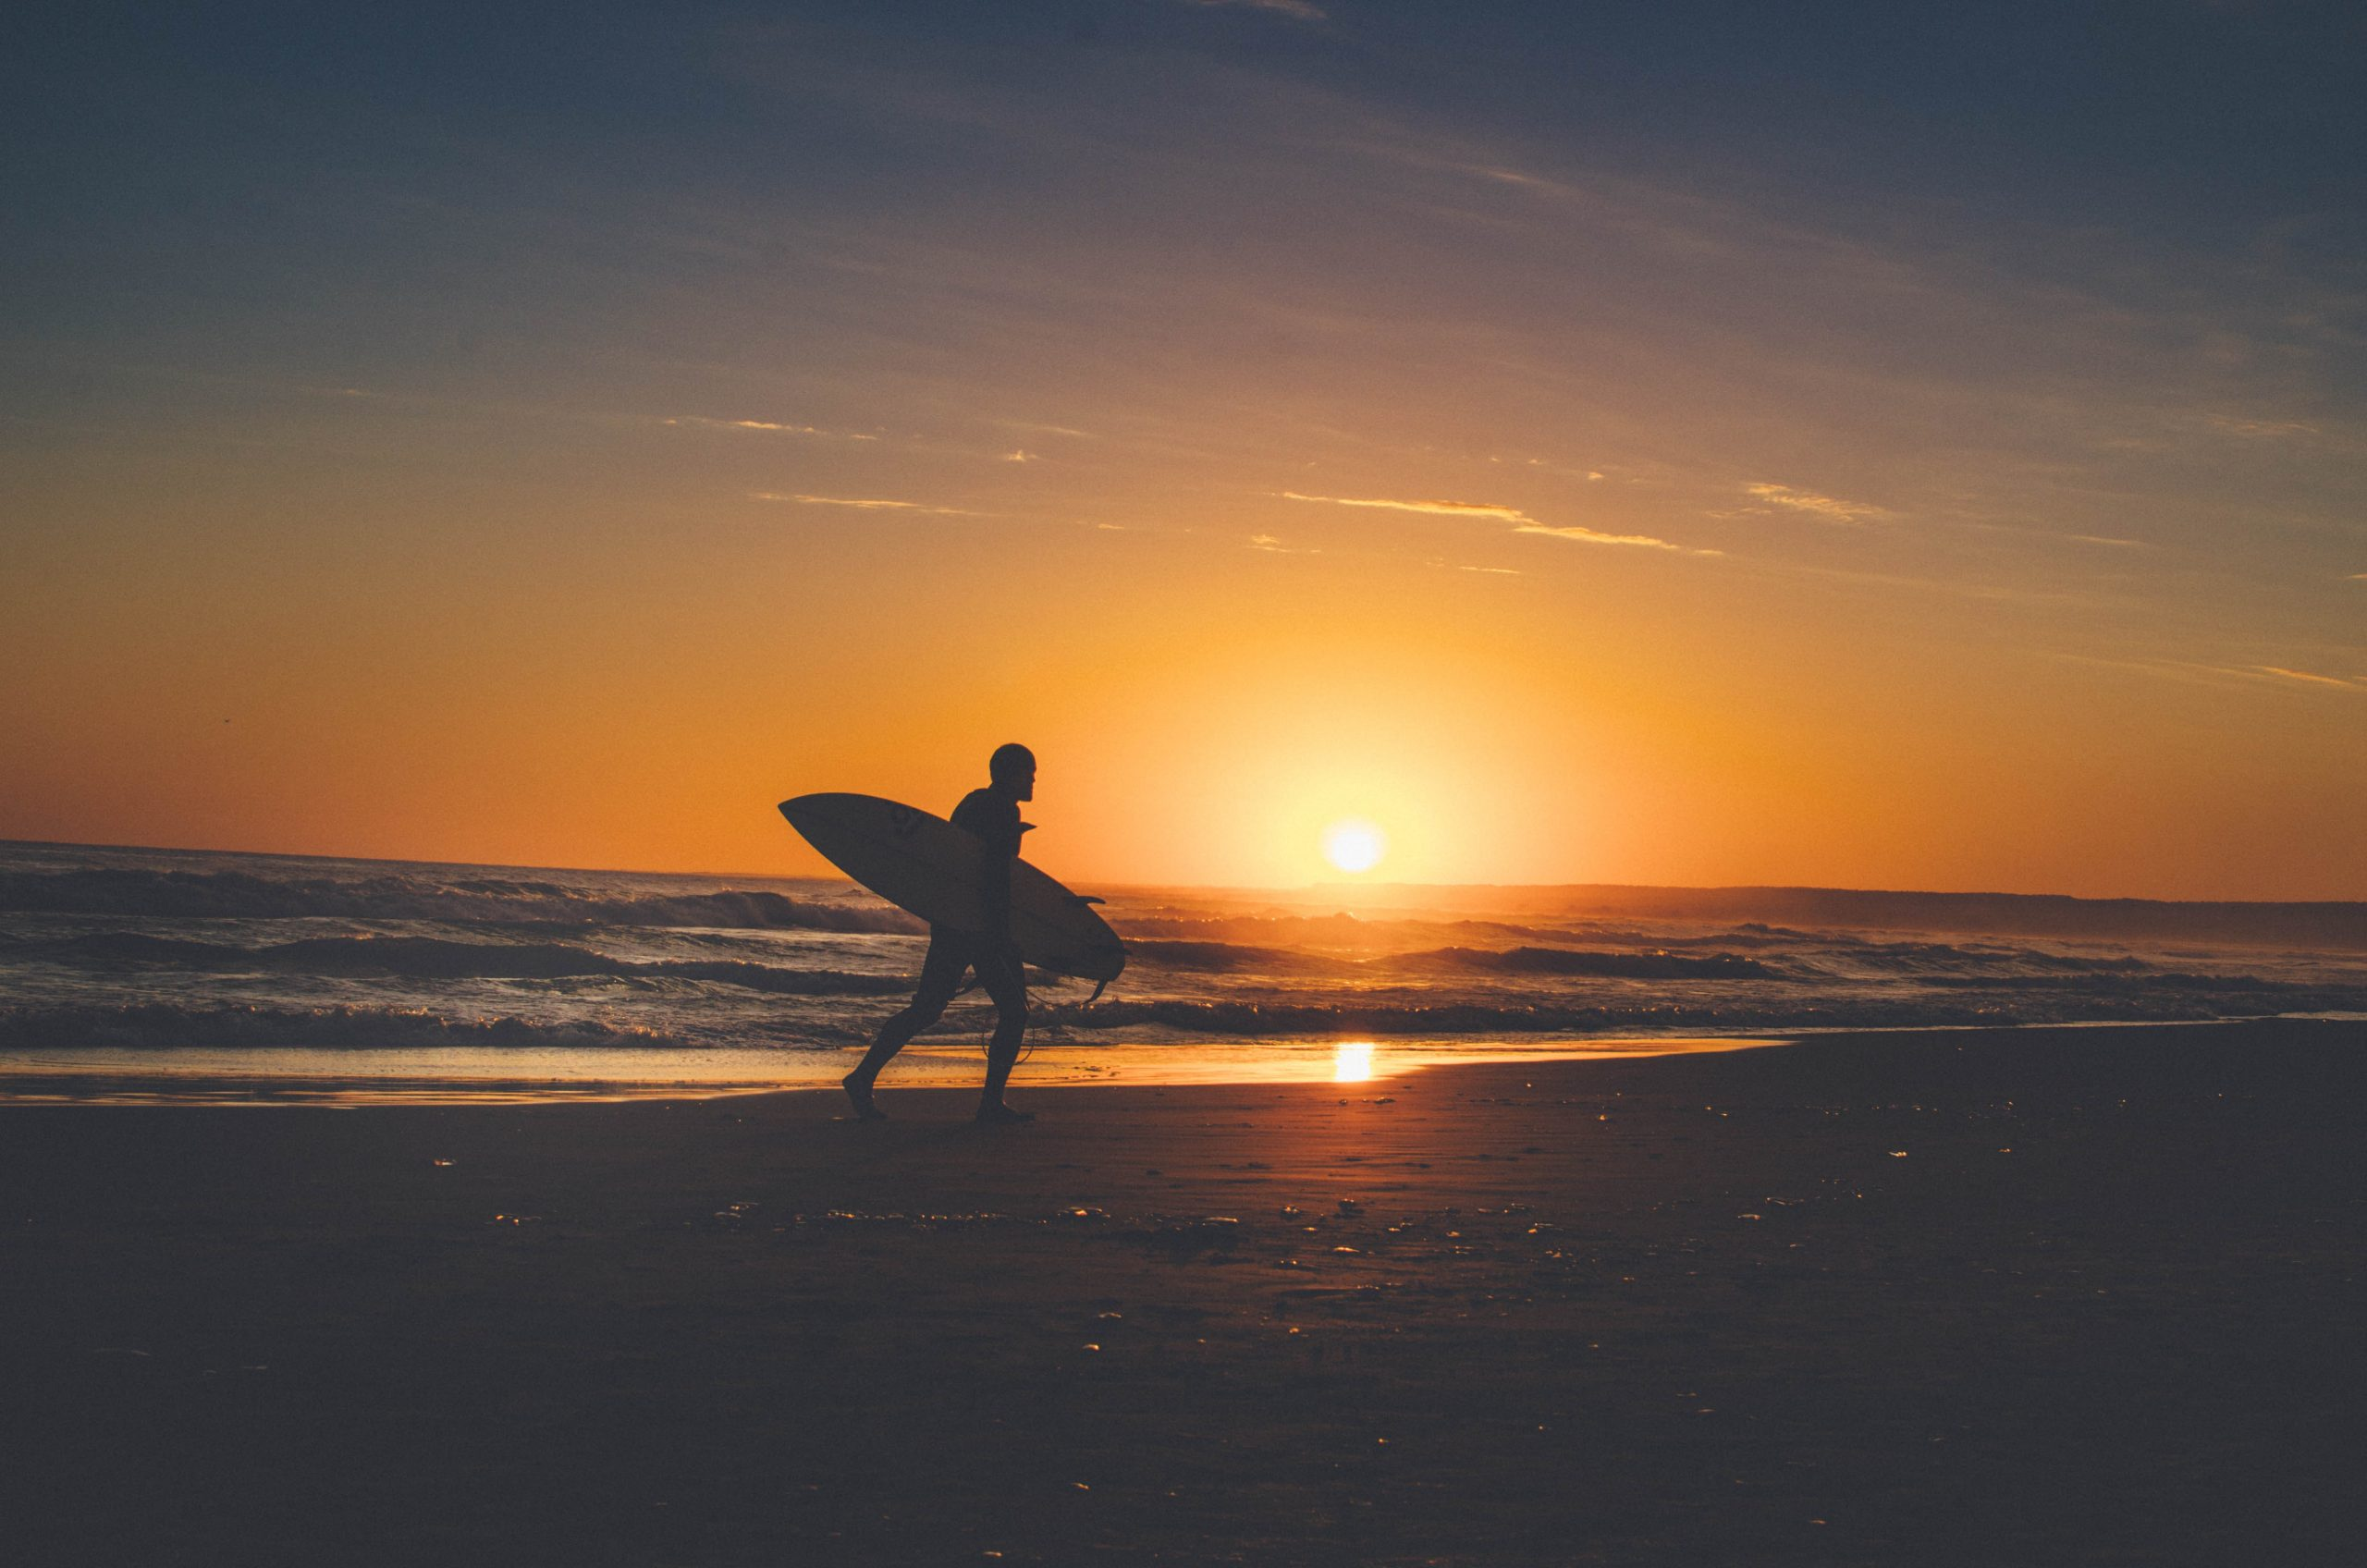 A surfer holding a surfboard and walking along the shore at sunset.